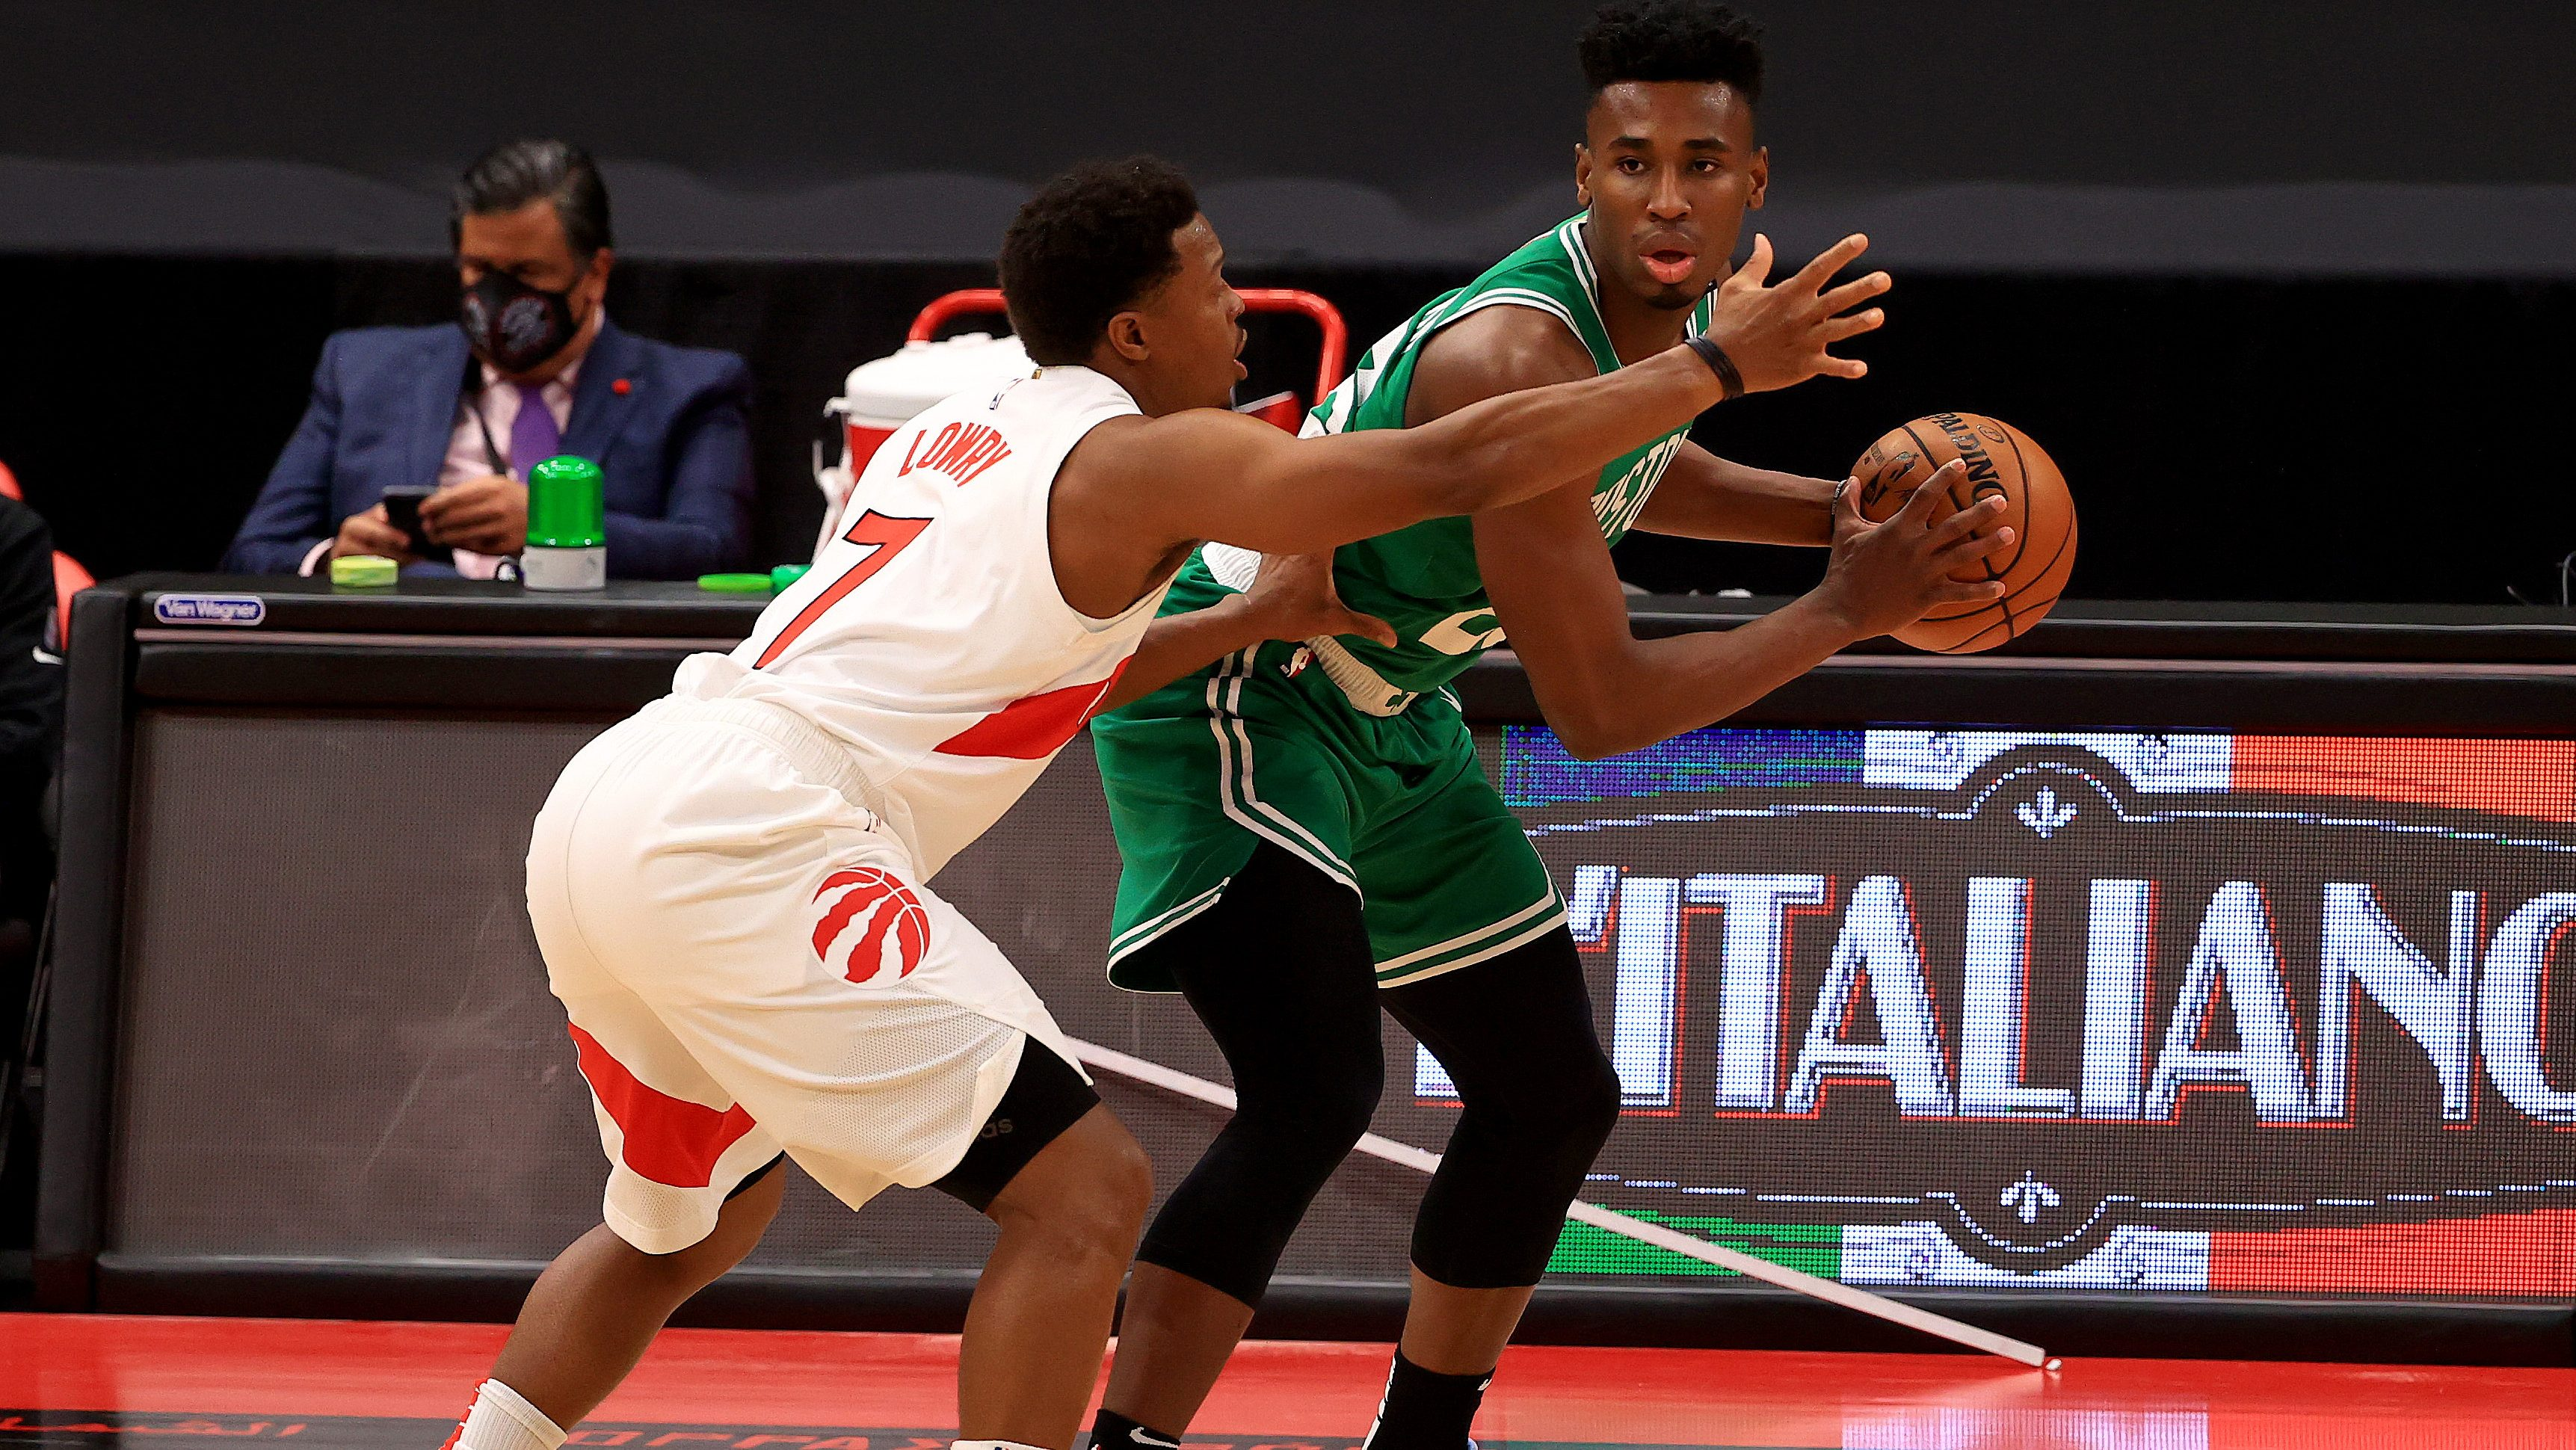 Former All-Star Sky High on Celtics Rookie: 'Once he Gets it, Look Out'